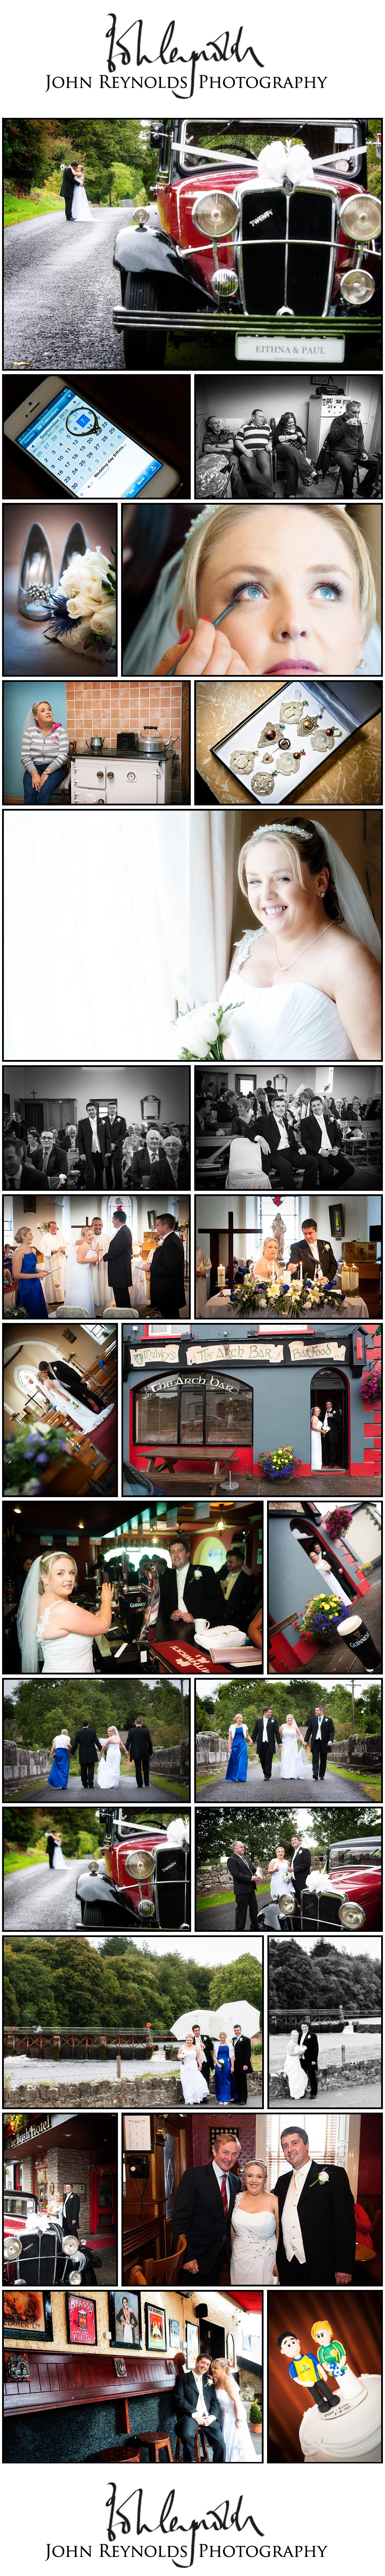 Blog Collage- Eithna & Paul